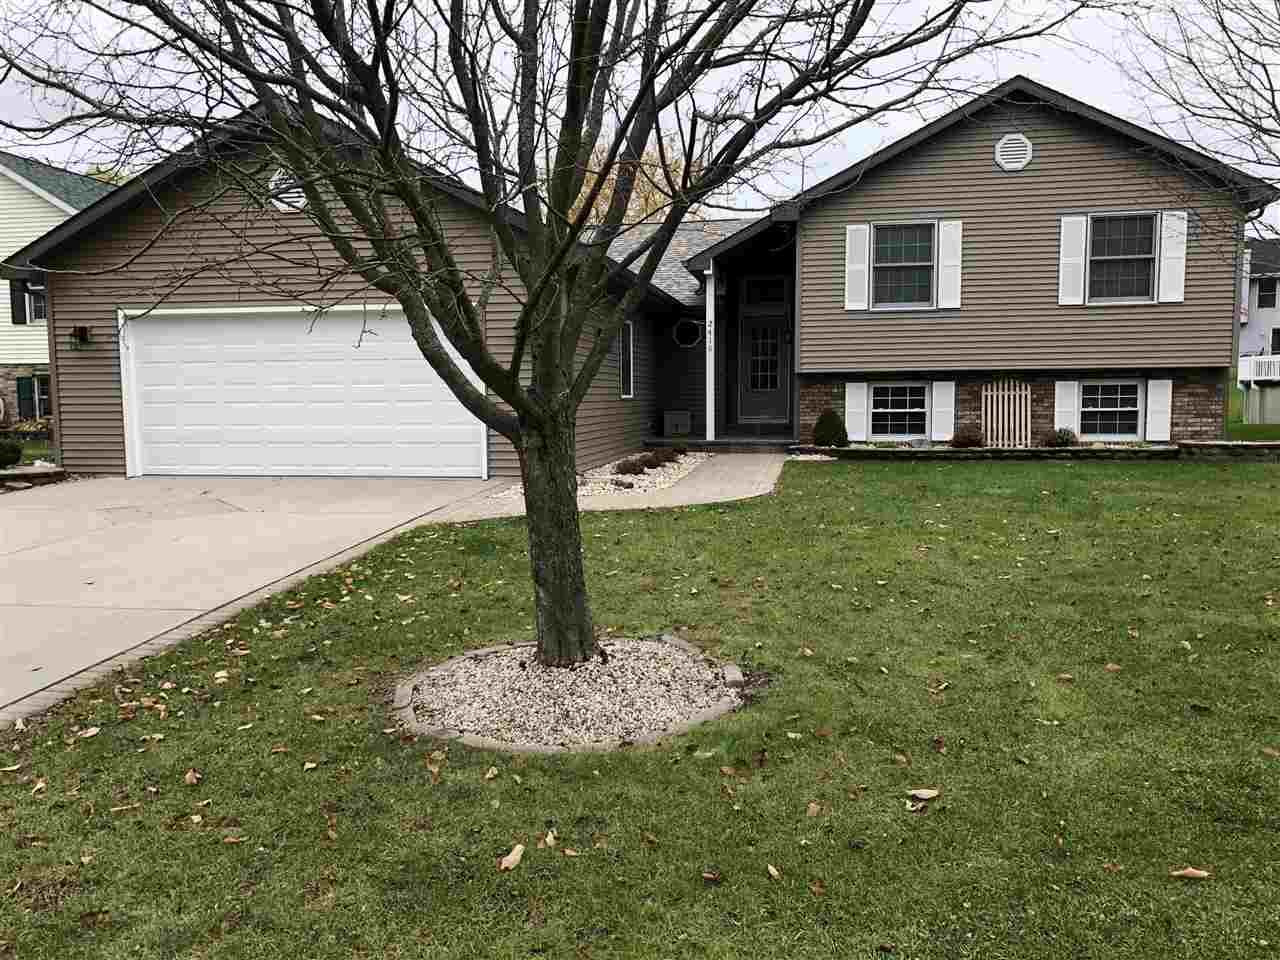 2416 Fawn Ln, Janesville, WI 53548 - #: 1890165